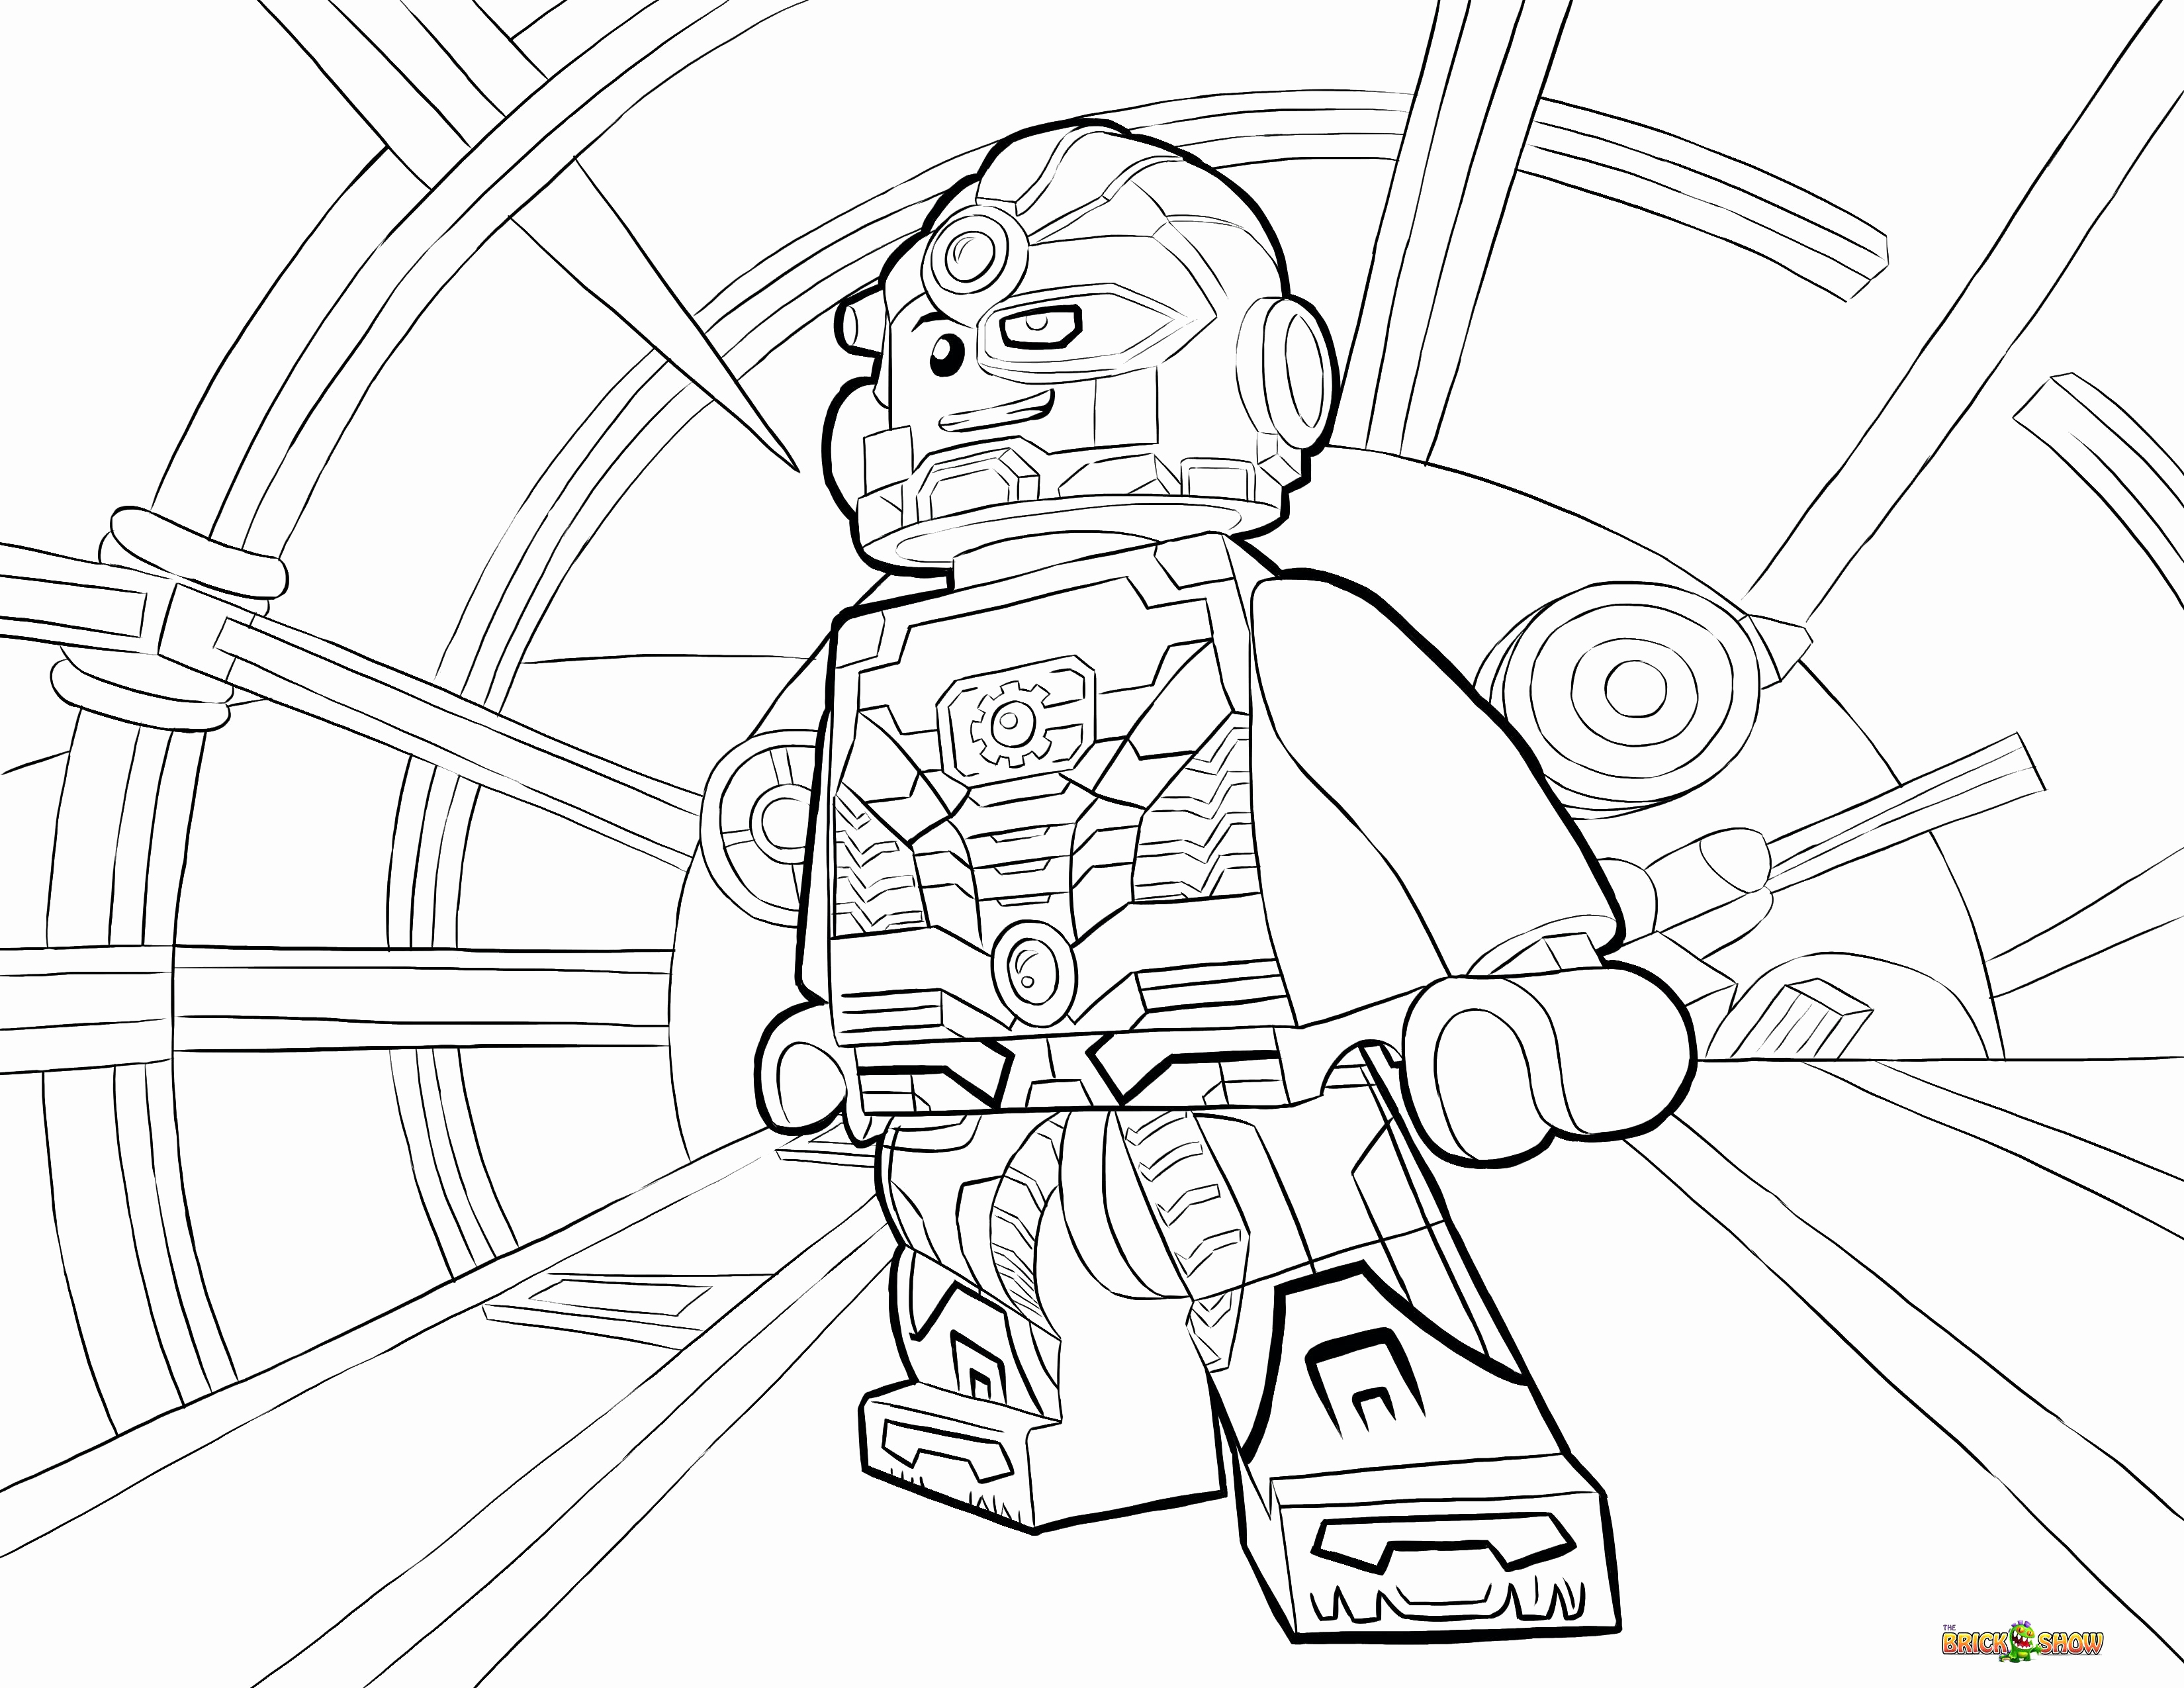 free superhero coloring pages Download-Superhero Coloring Pages Coloring Pages Terrific Superhero Coloring Pages Free Free Lego Superhero Coloring Pages 3-n